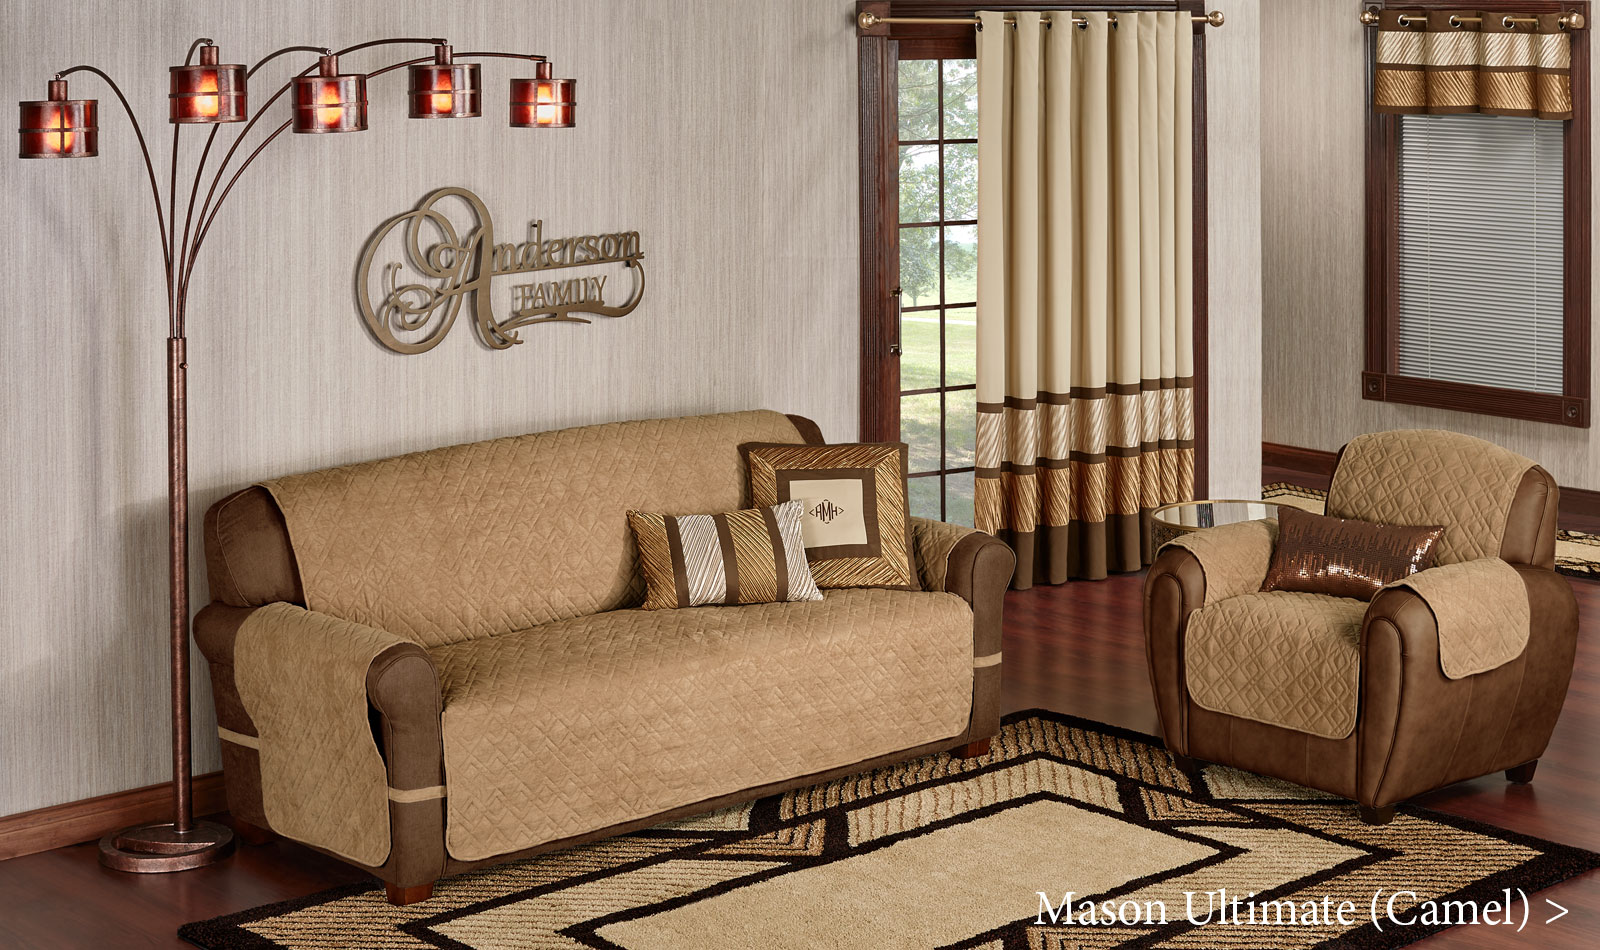 Mason Ultimate Furniture Cover Collection in Camel